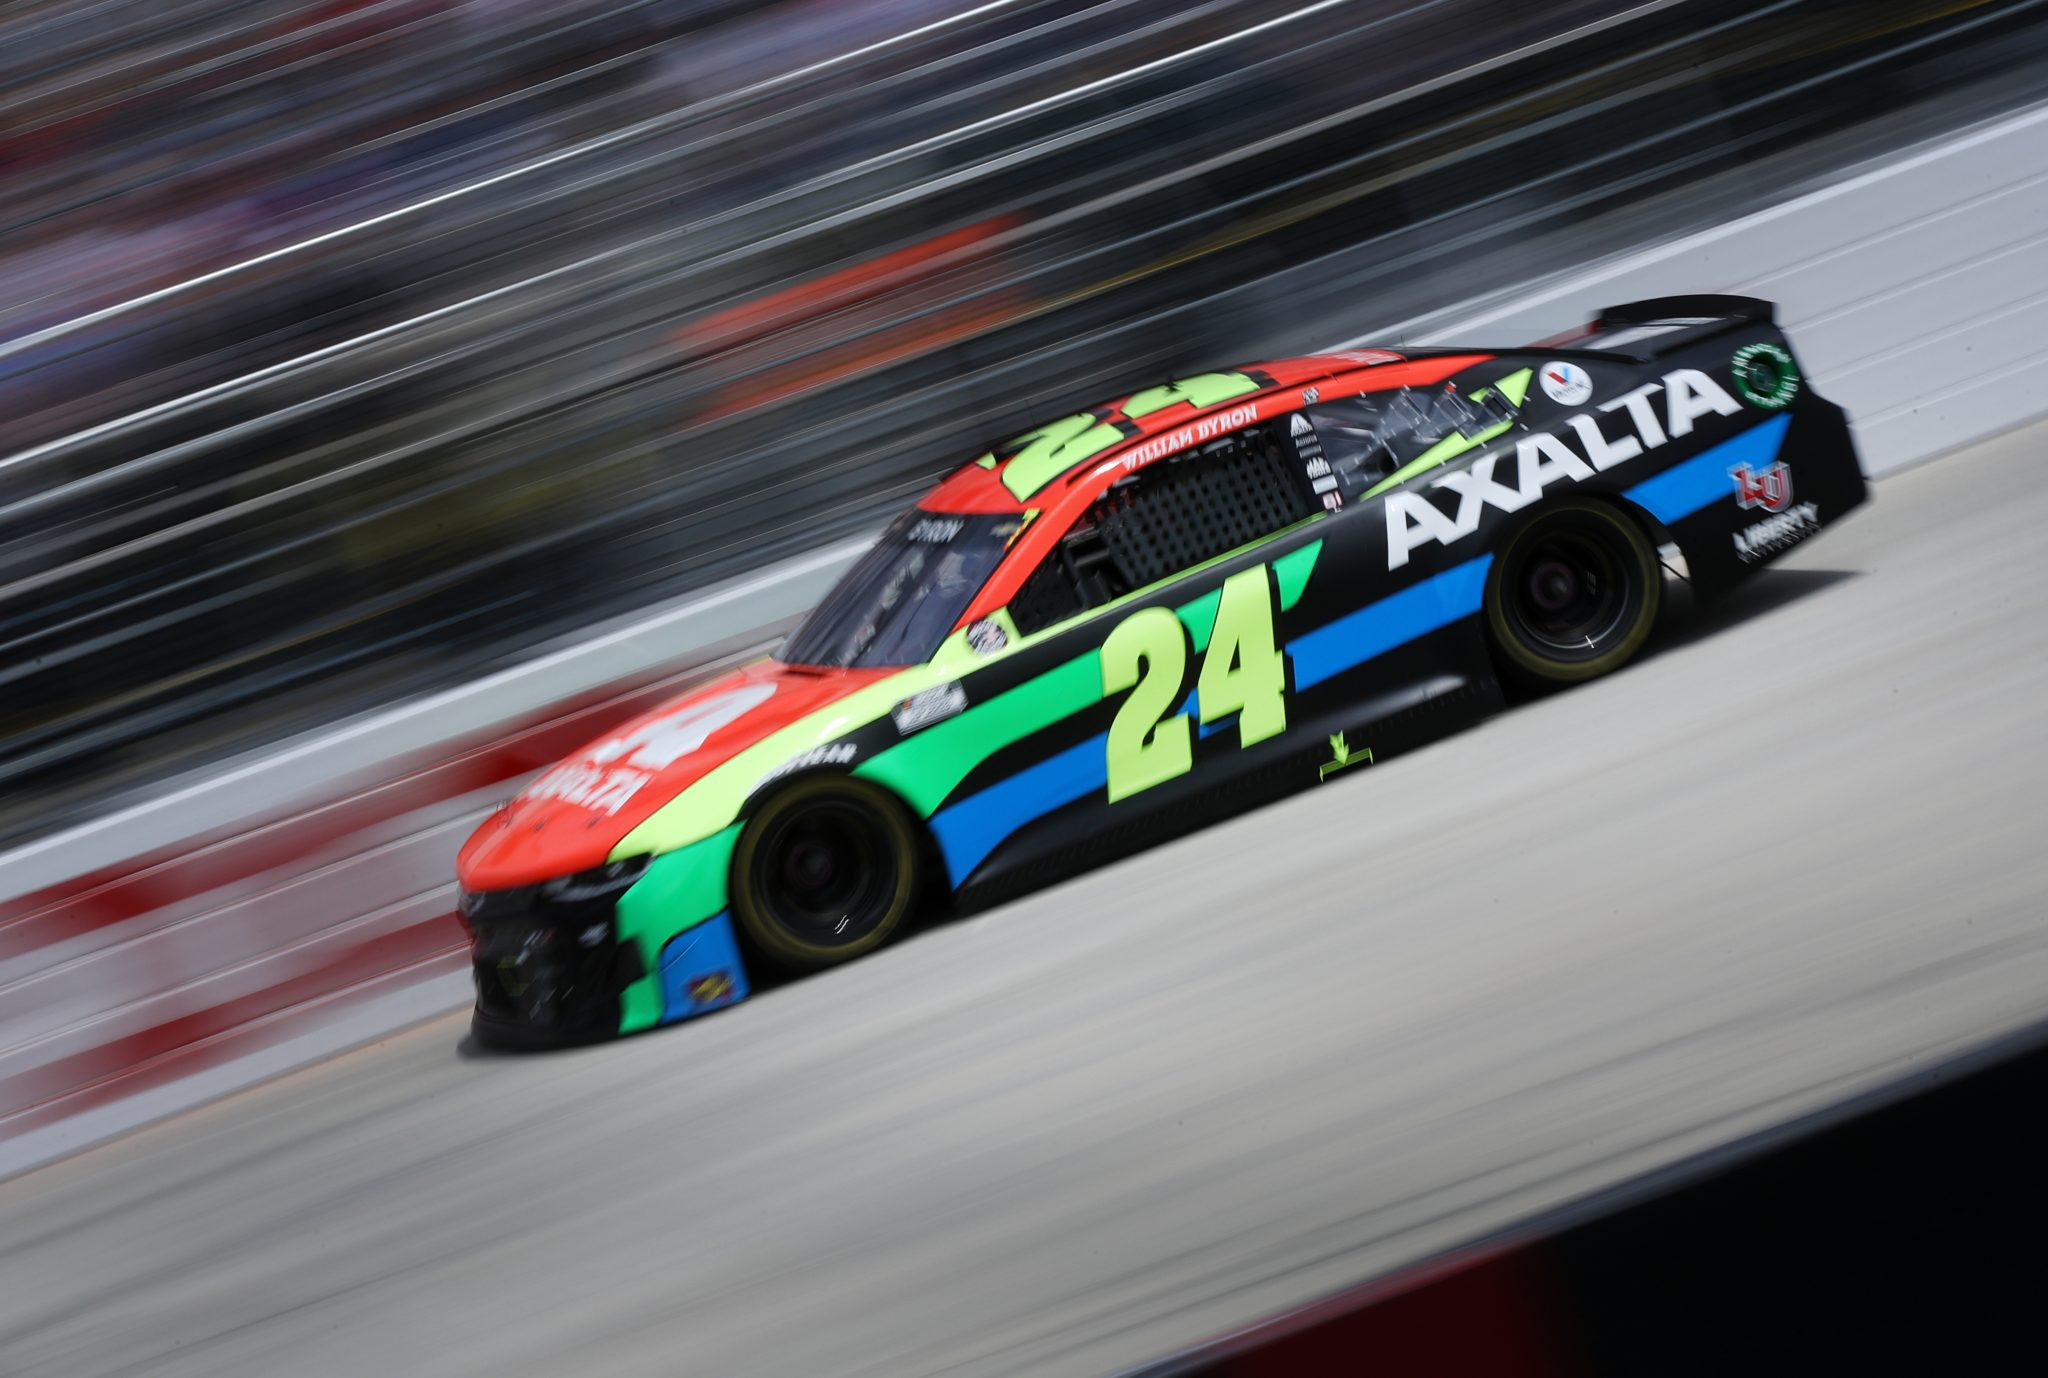 DOVER, DELAWARE - MAY 16: William Byron, driver of the #24 Axalta Chevrolet, races during the NASCAR Cup Series Drydene 400 at Dover International Speedway on May 16, 2021 in Dover, Delaware. (Photo by Sean Gardner/Getty Images) | Getty Images